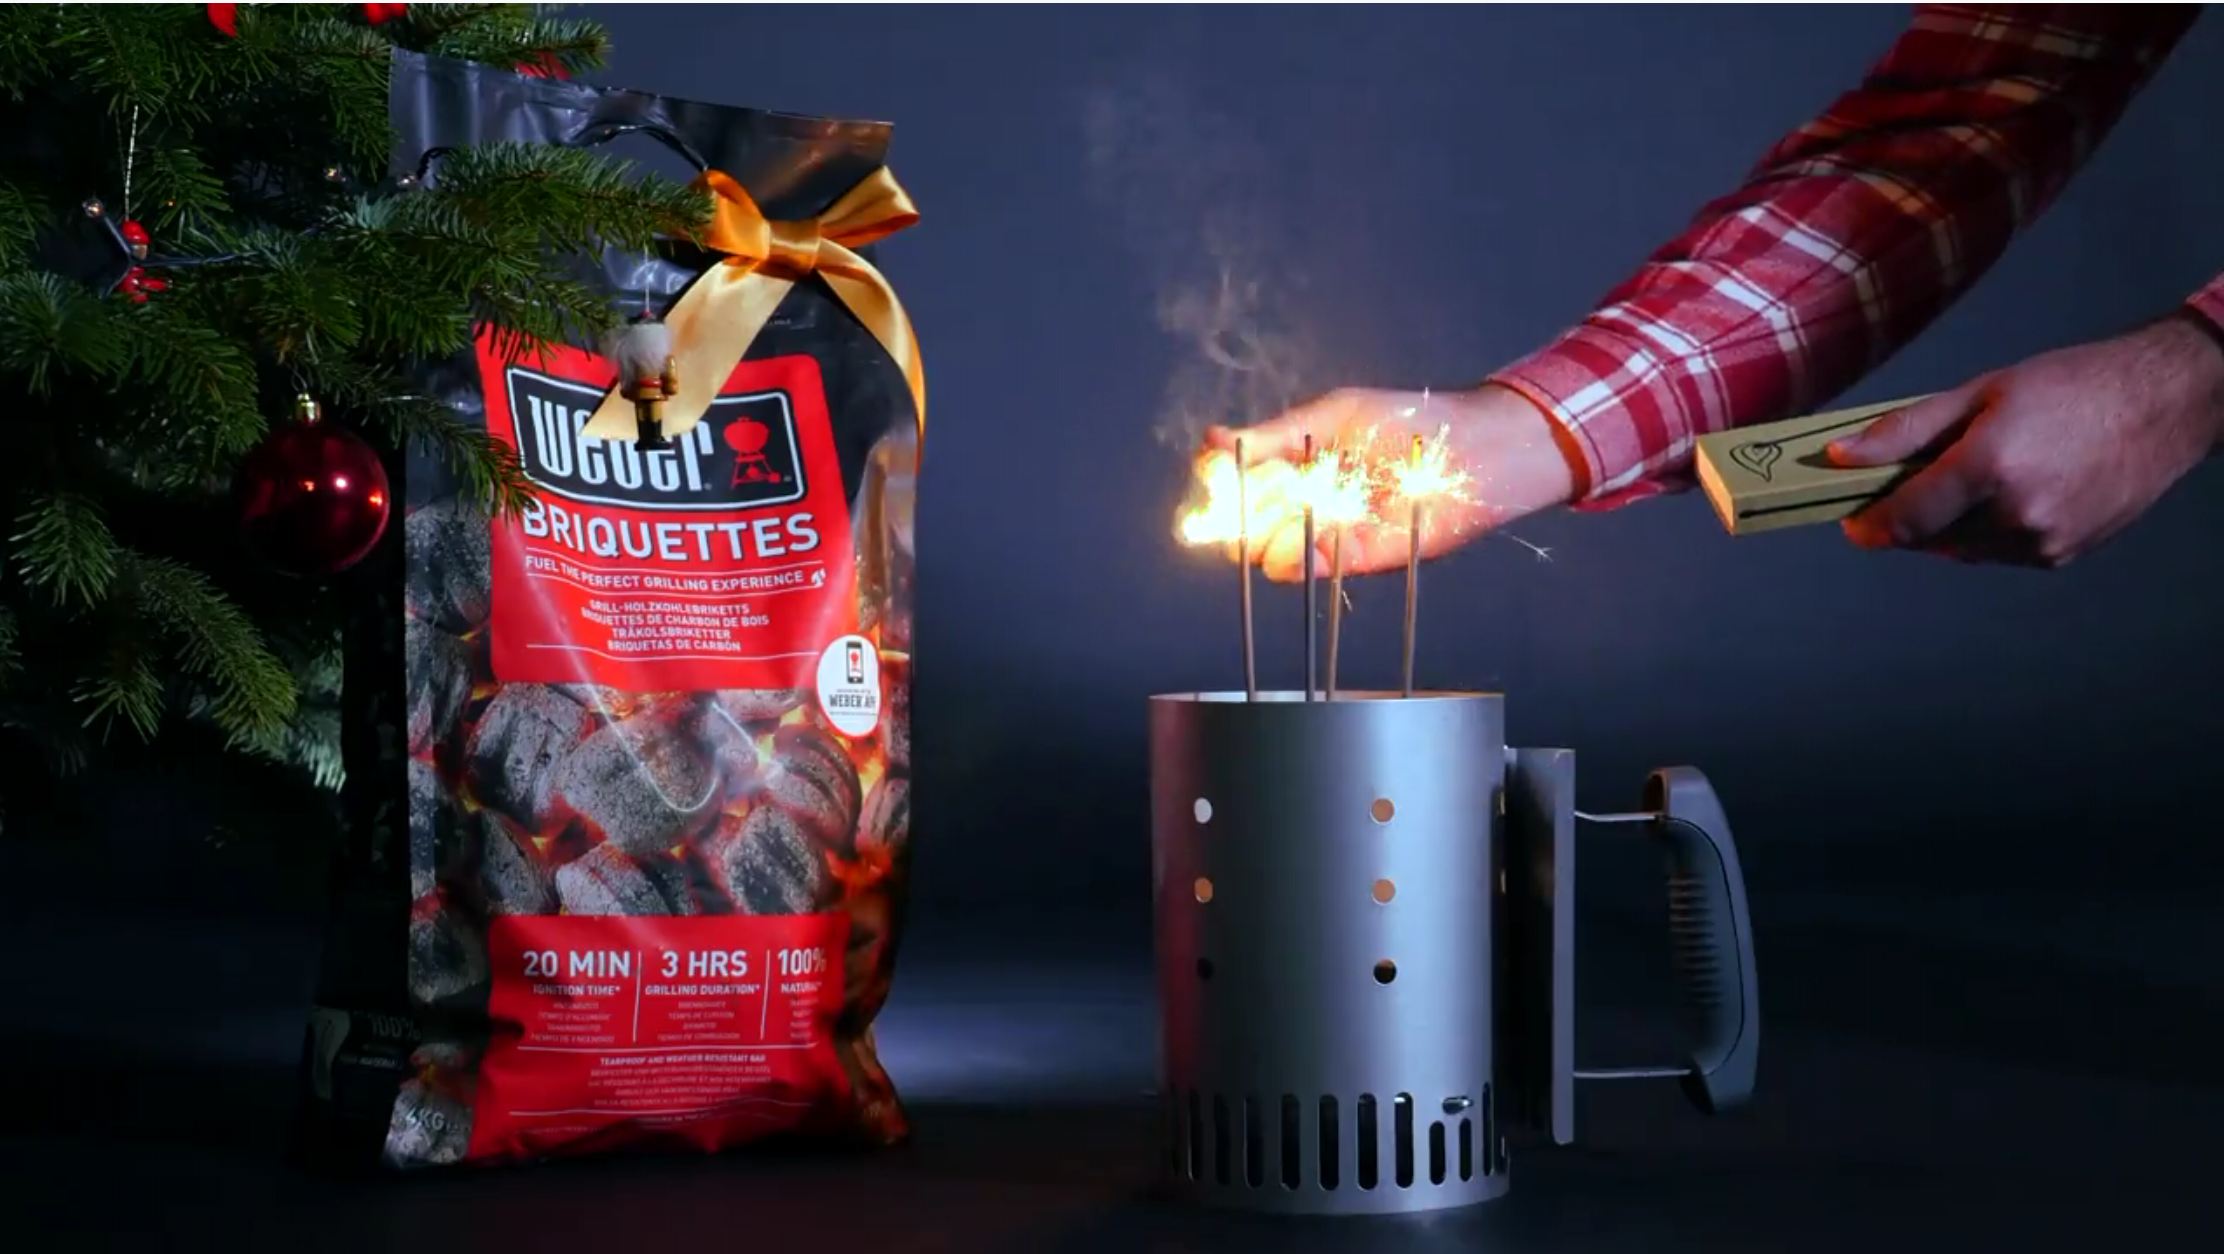 Weber - Christmas Video and Photography Campaign